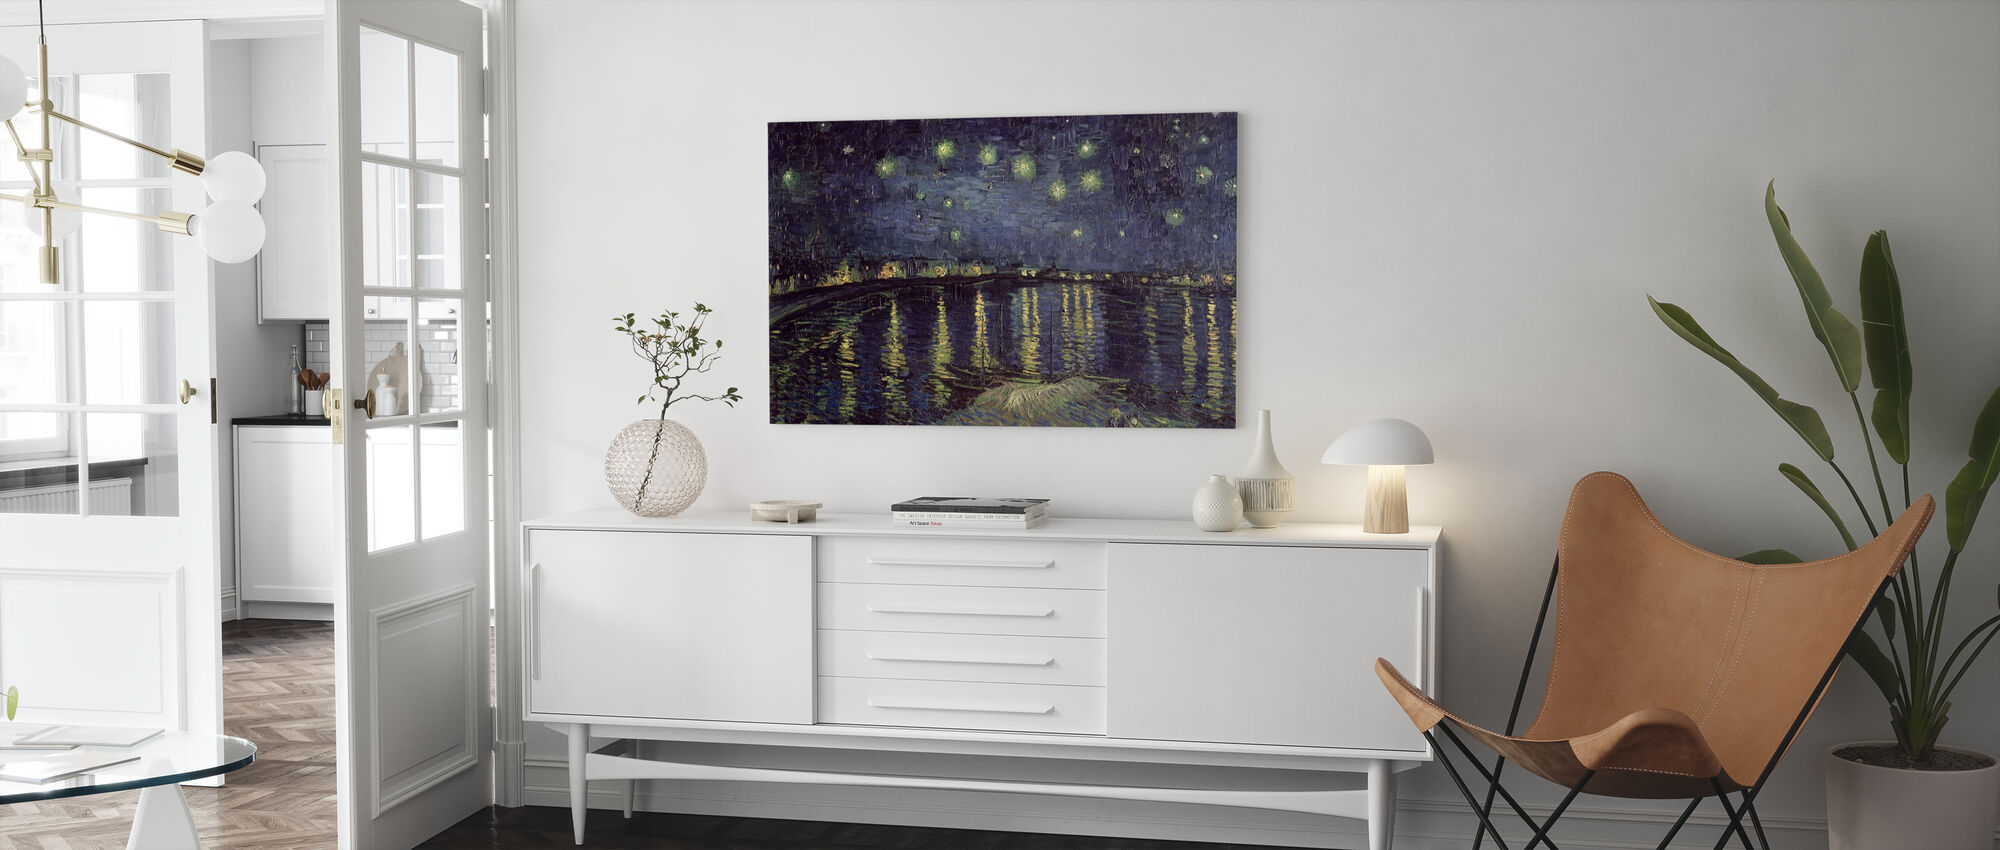 Starry Night - Vincent van Gogh - Canvastaulu - Olohuone